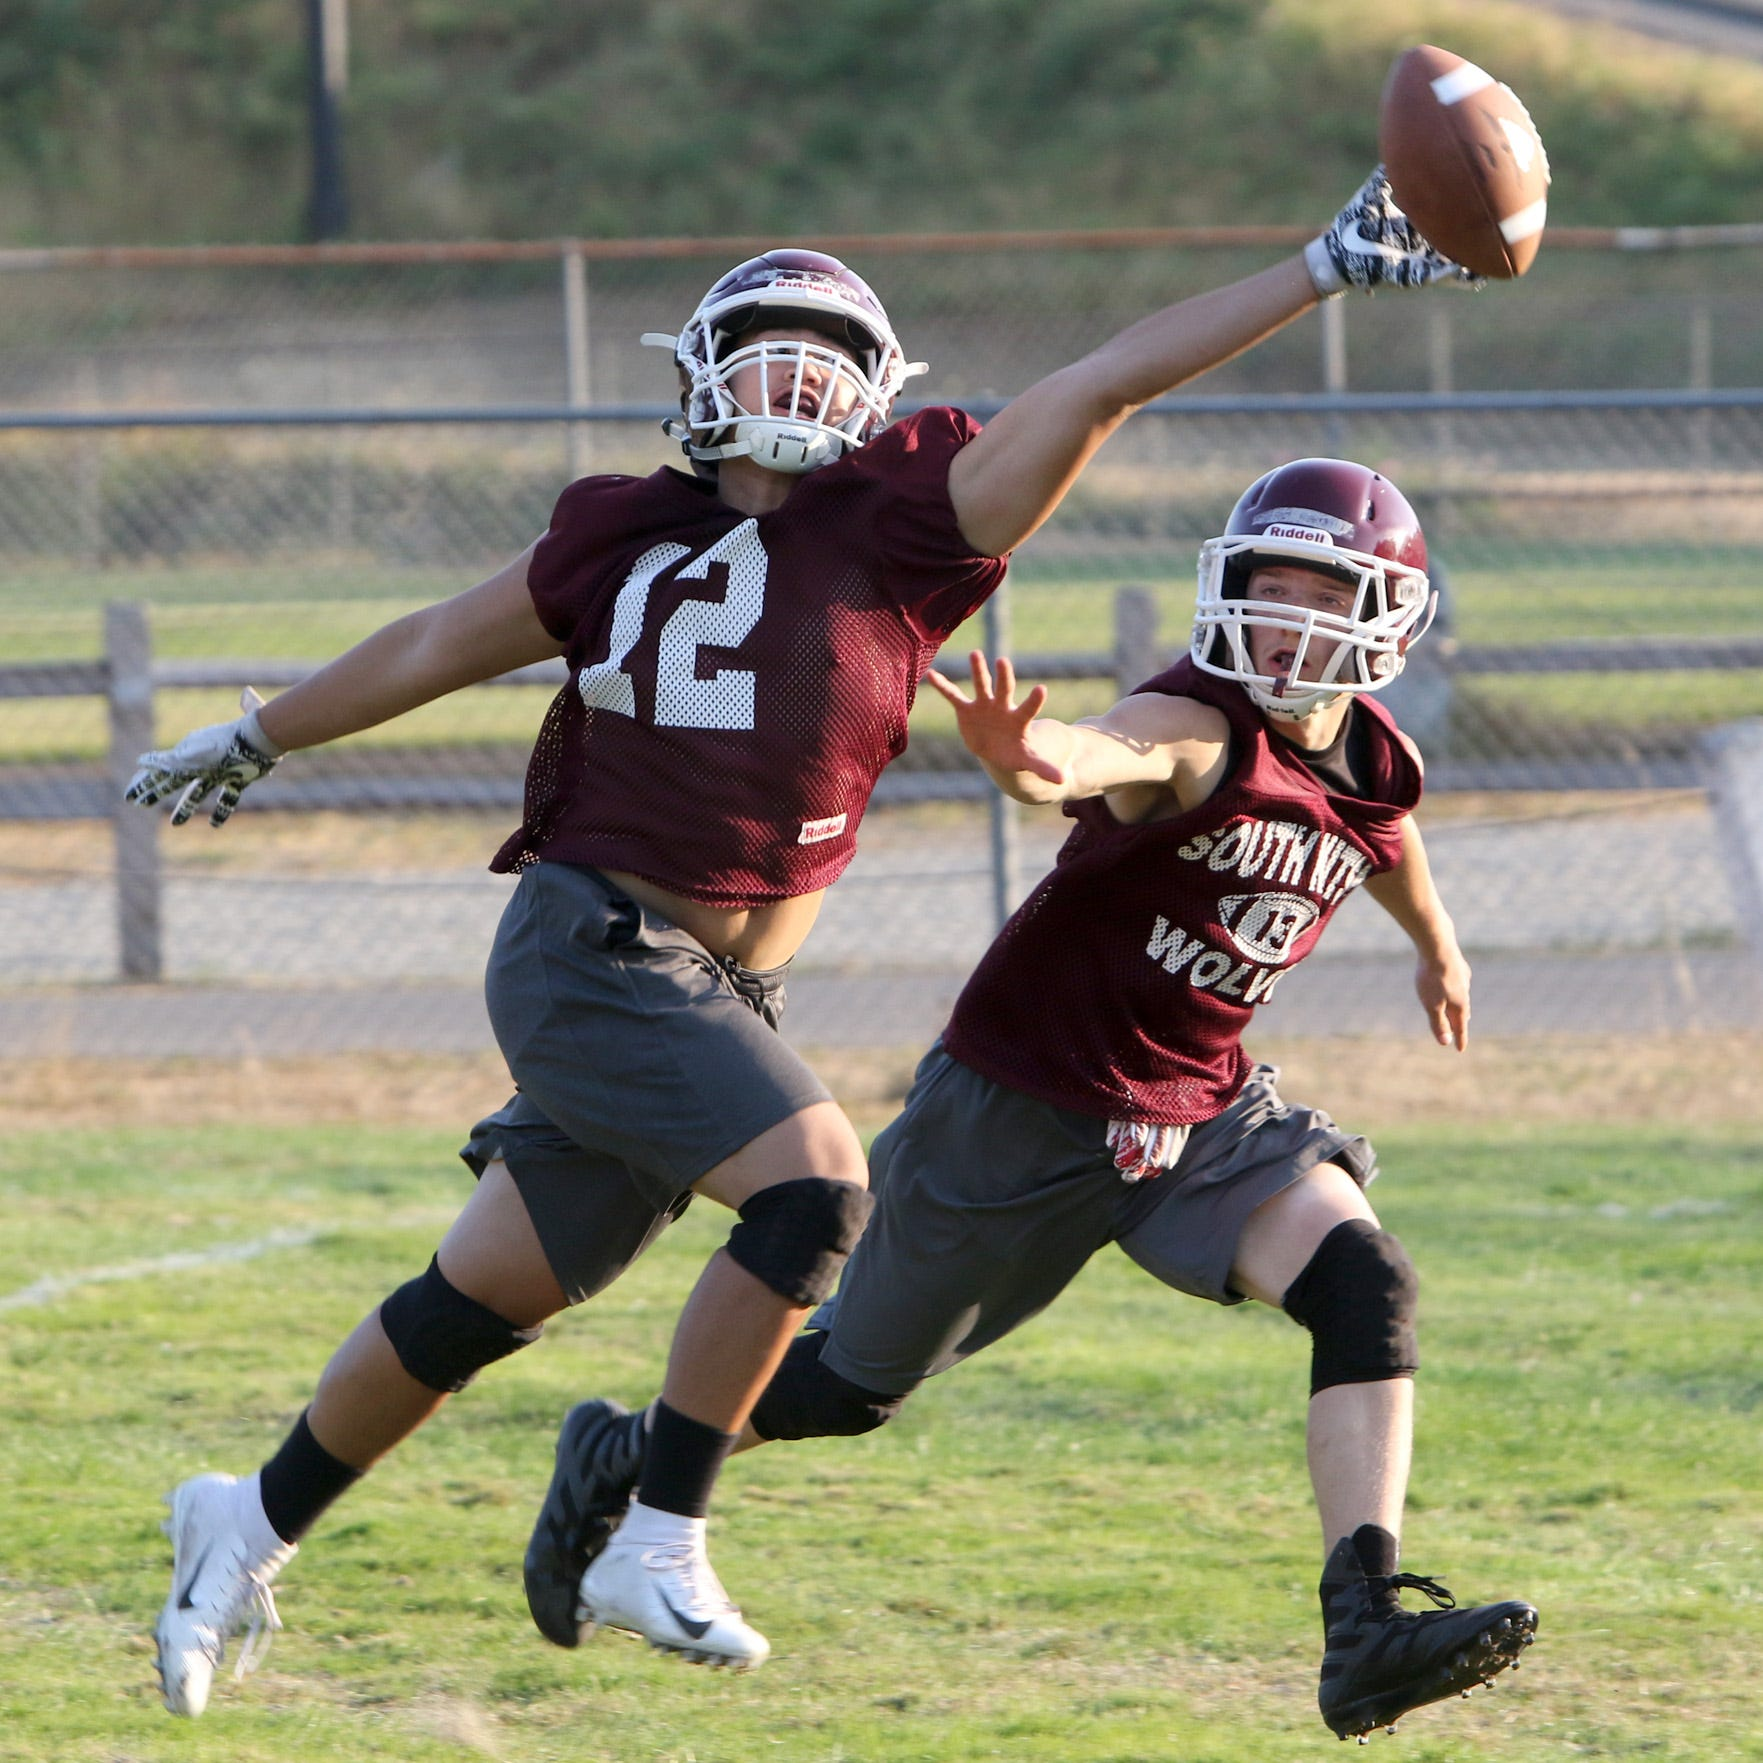 Would going independent help resurrect South Kitsap football?